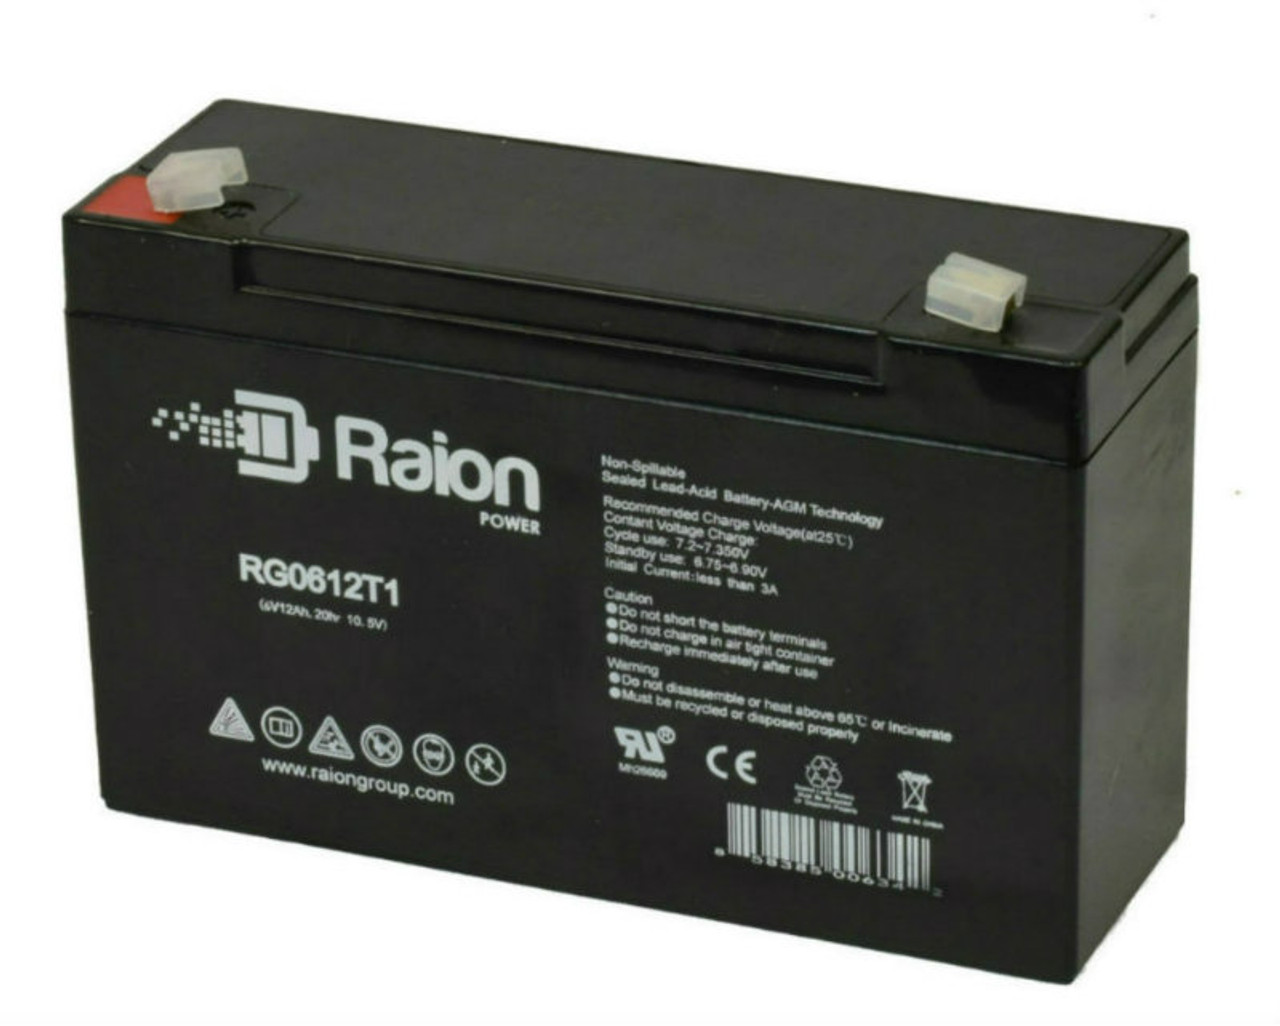 Raion Power RG06120T1 Replacement Battery Pack for Sonnenschein M300 emergency light